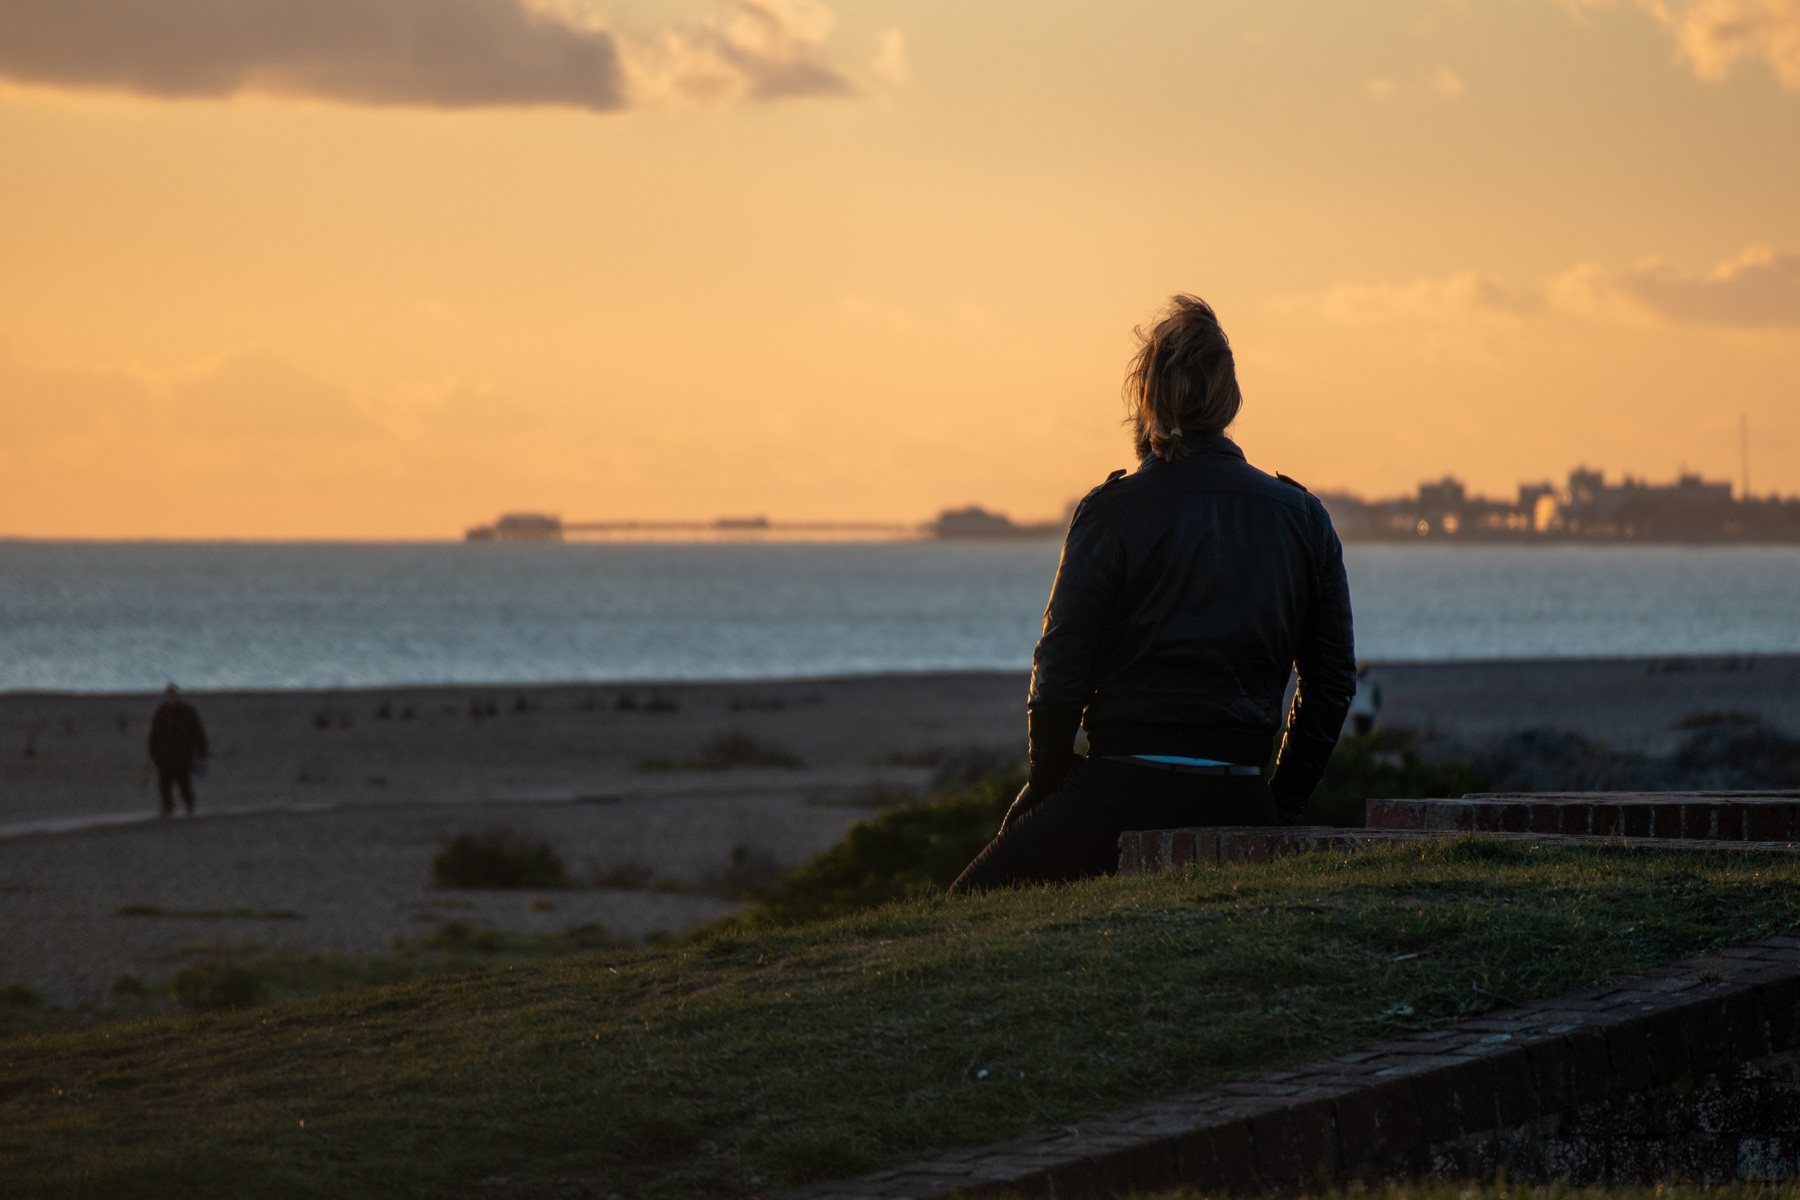 A man sits on the edge of Shoreham Fort, watching the sun set over Worthing.